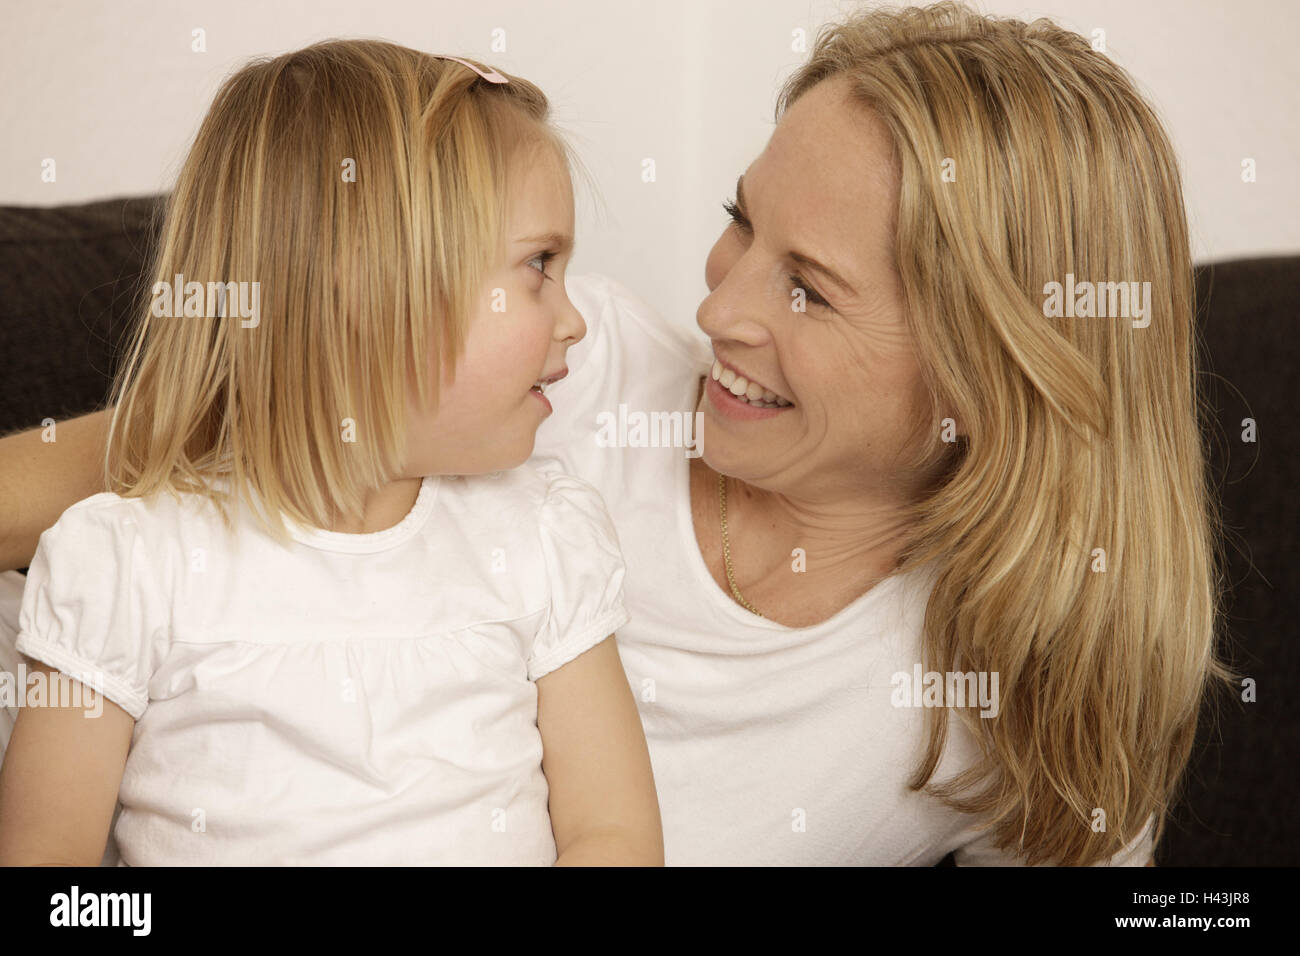 Nut, subsidiary, eye contact, smile, portrait, model released, people, woman, child, girl, blond, side view, suture, - Stock Image